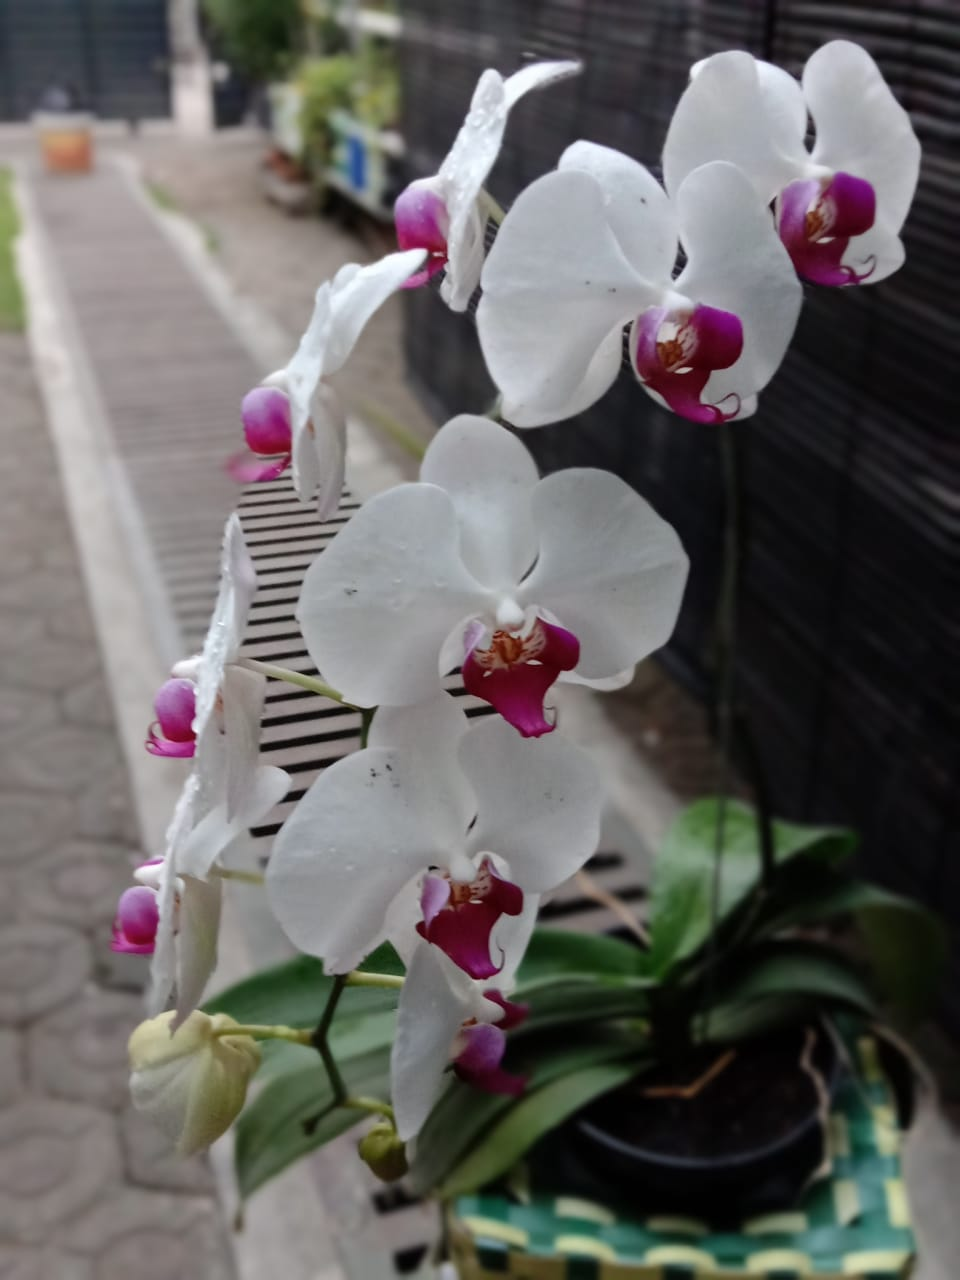 SAY IT WITH ORCHID